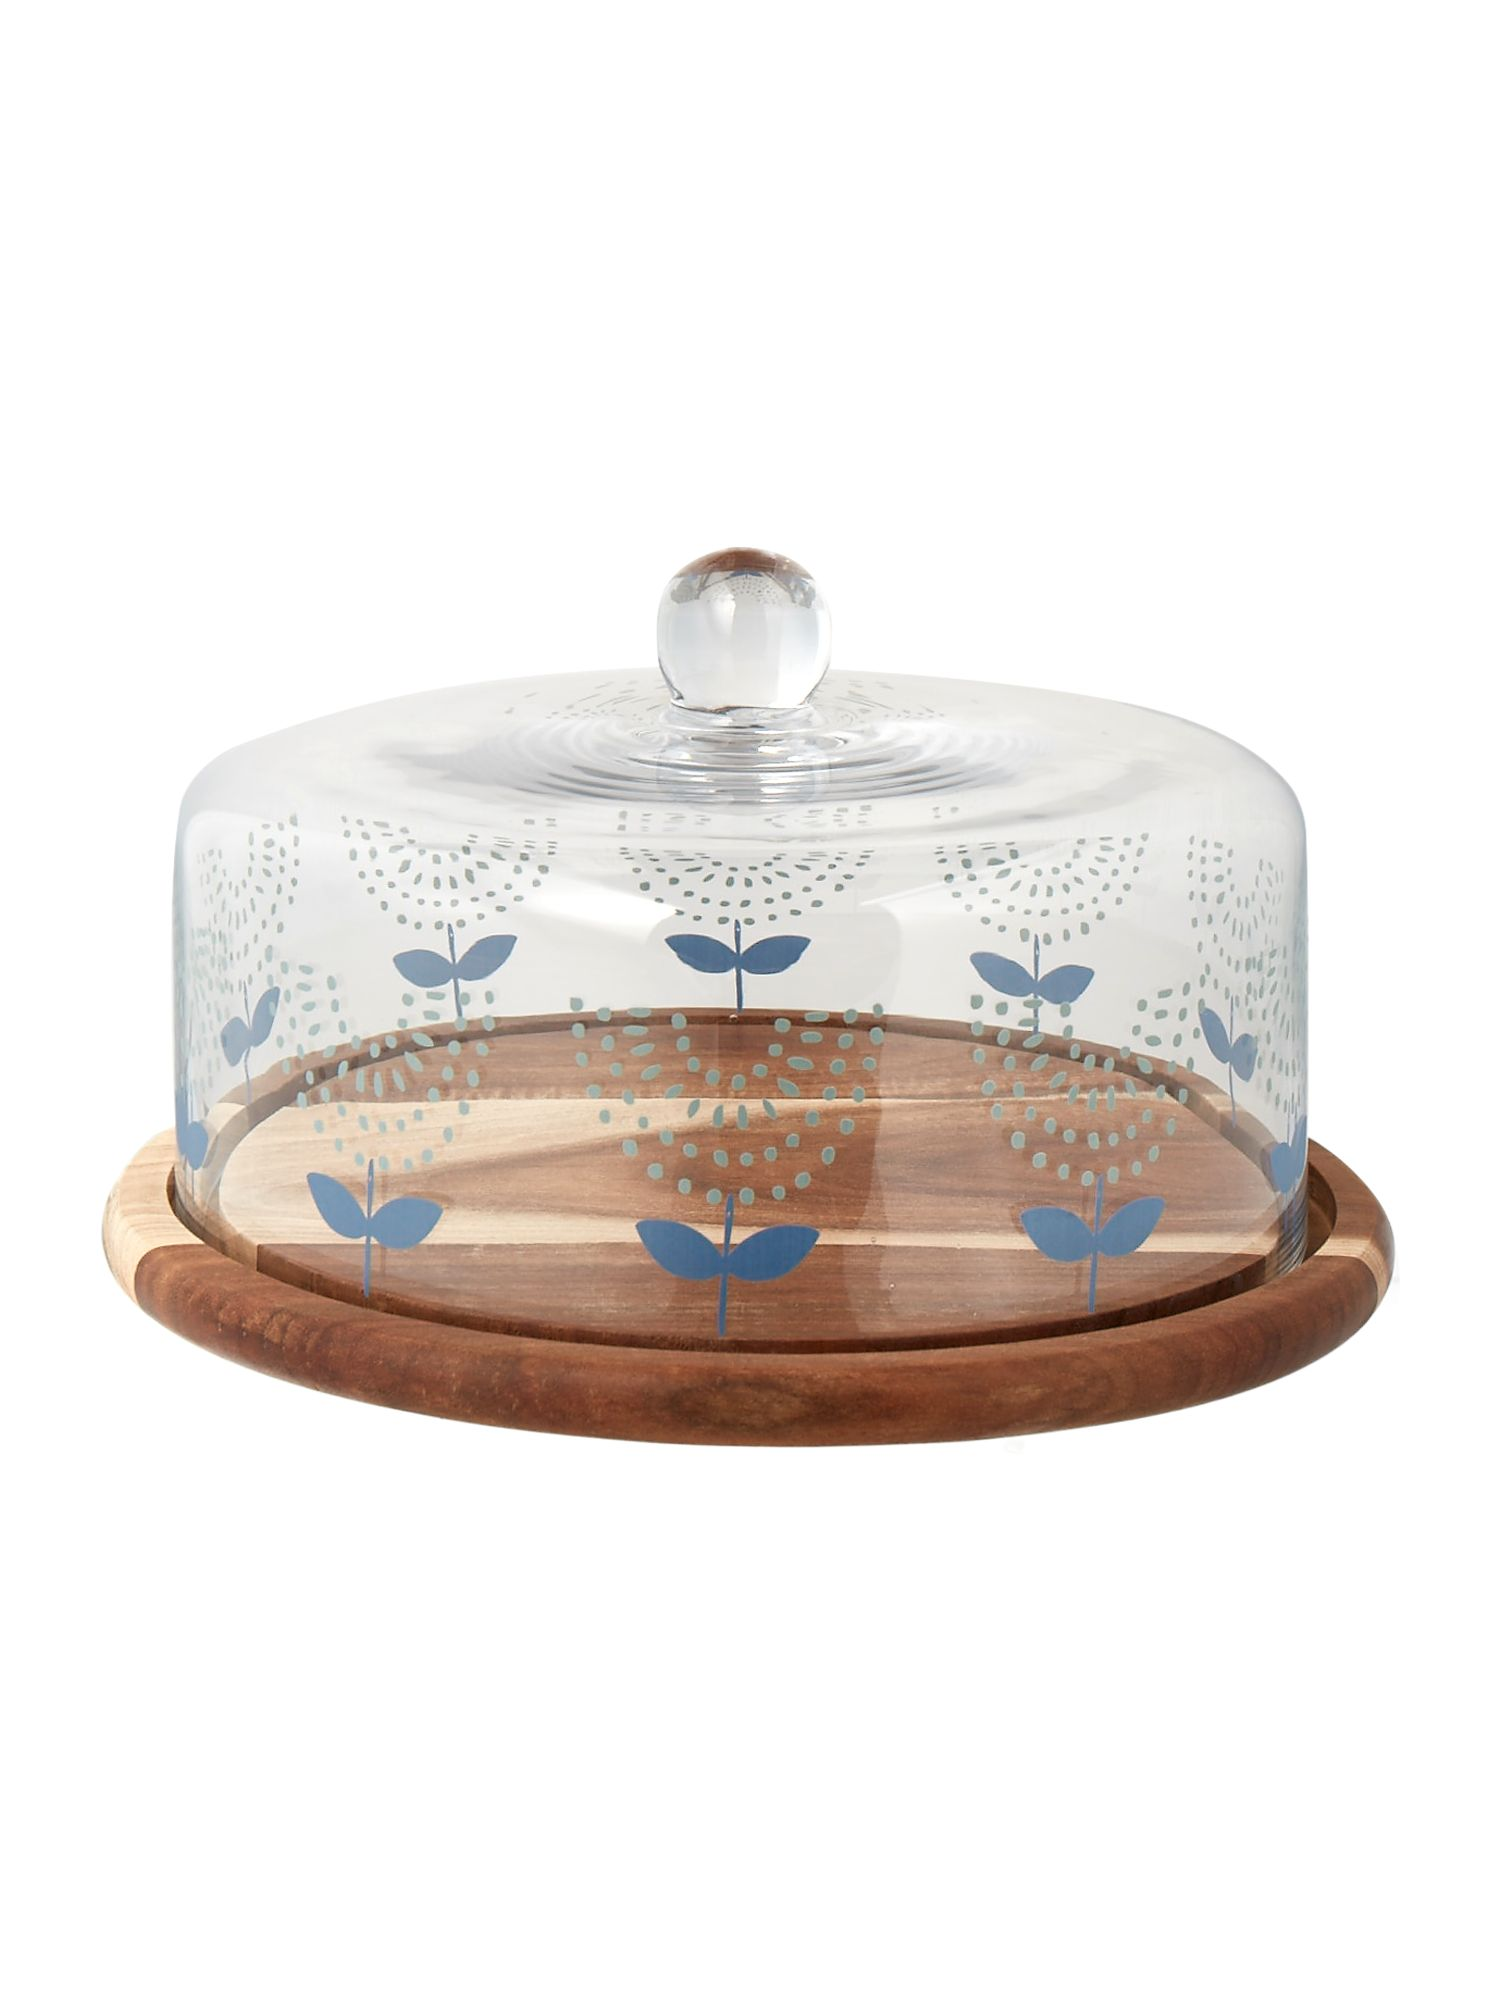 Image of Dickins & Jones Acacia cake stand with dome